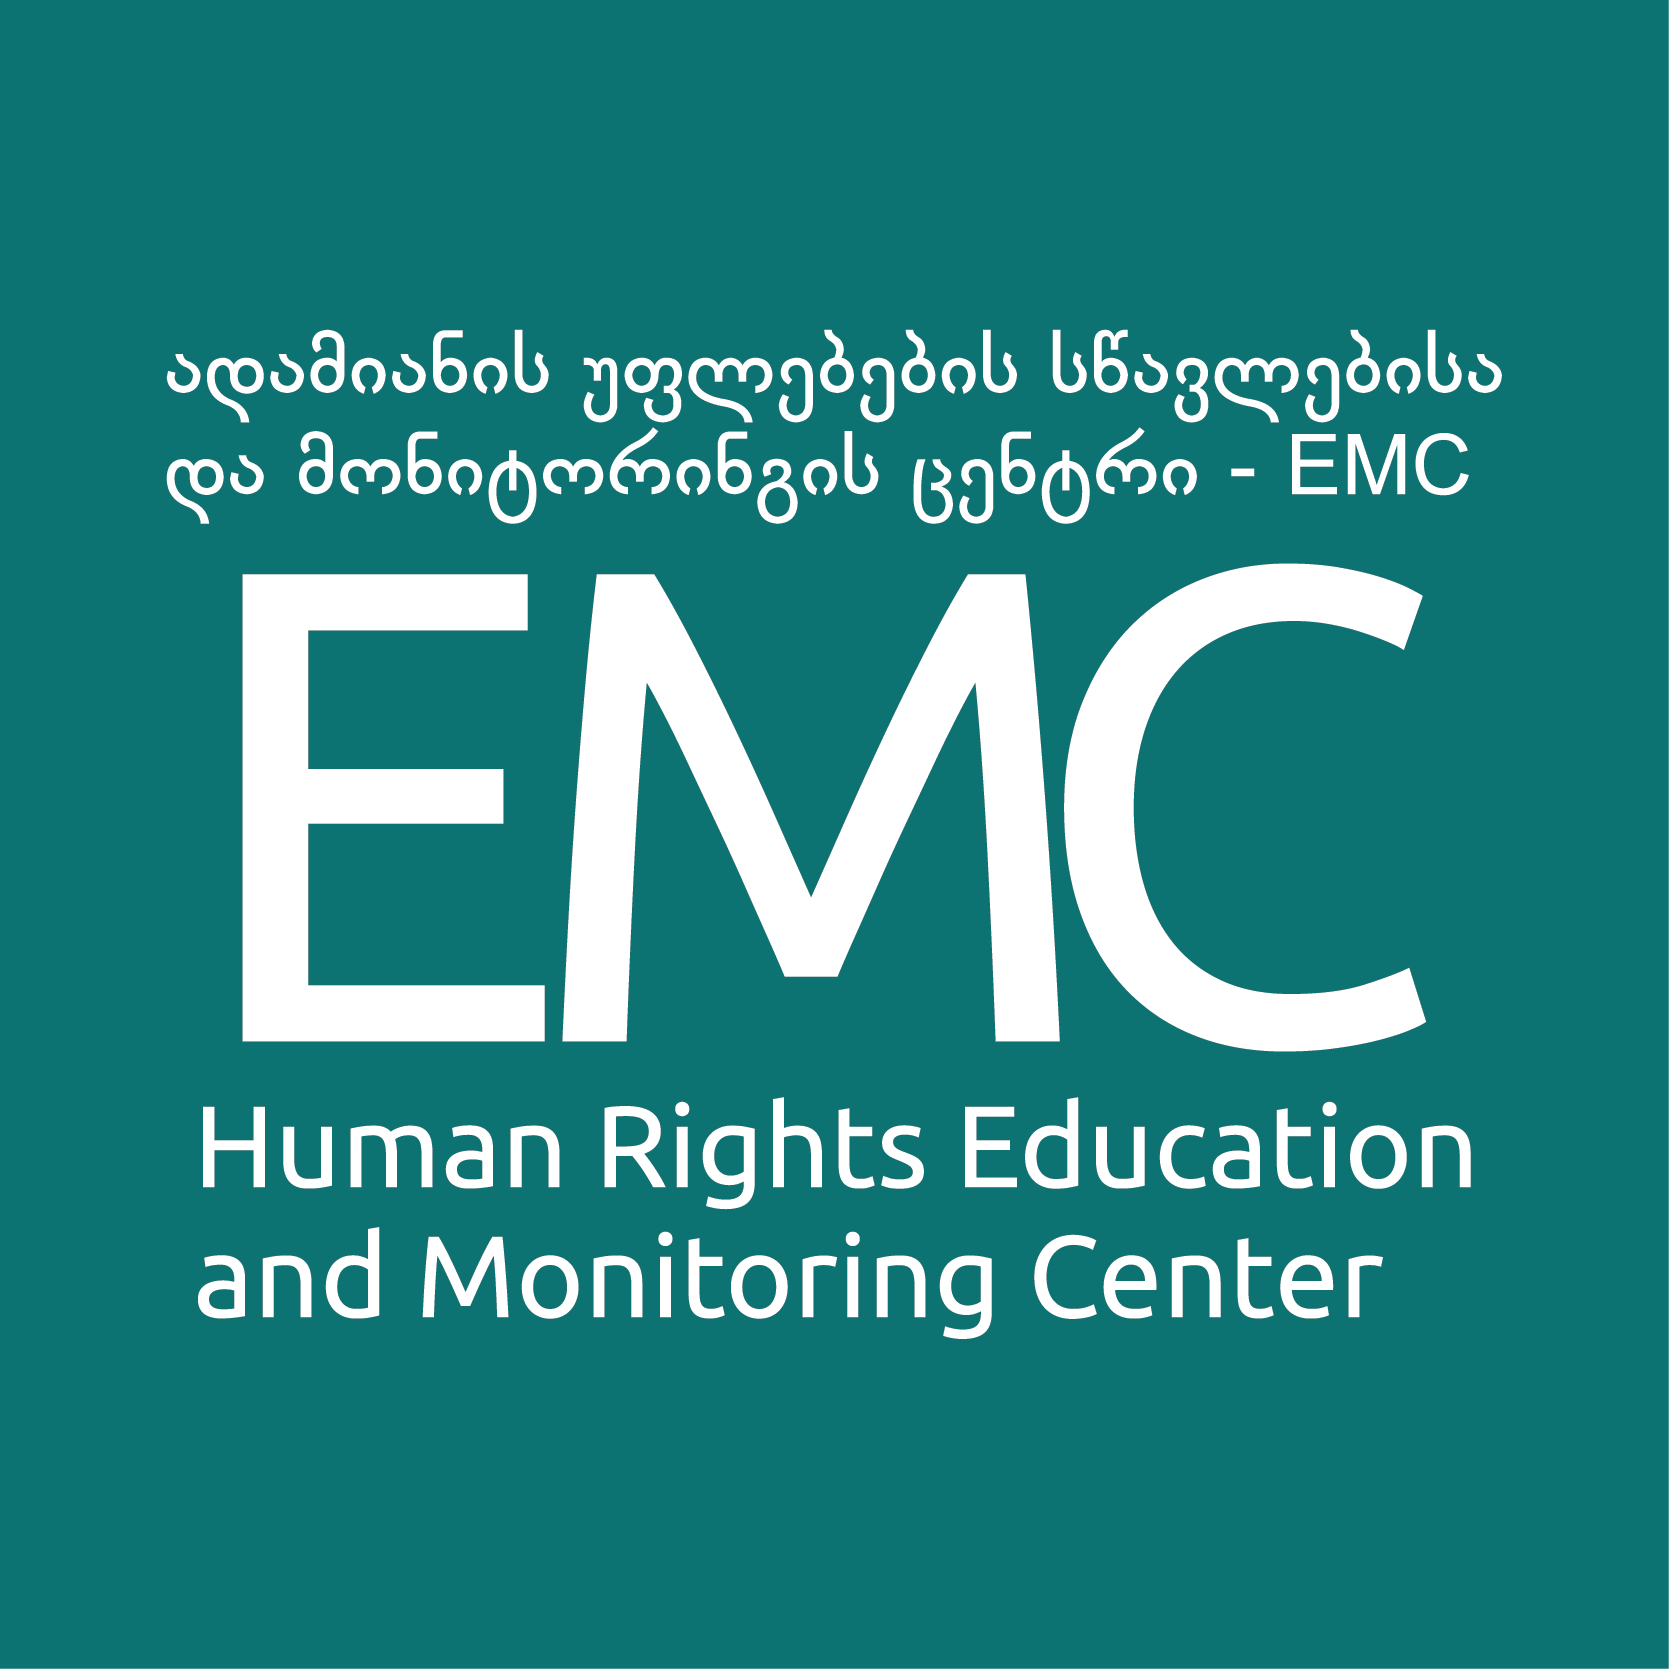 Human Rights Education and Monitoring Center (EMC)